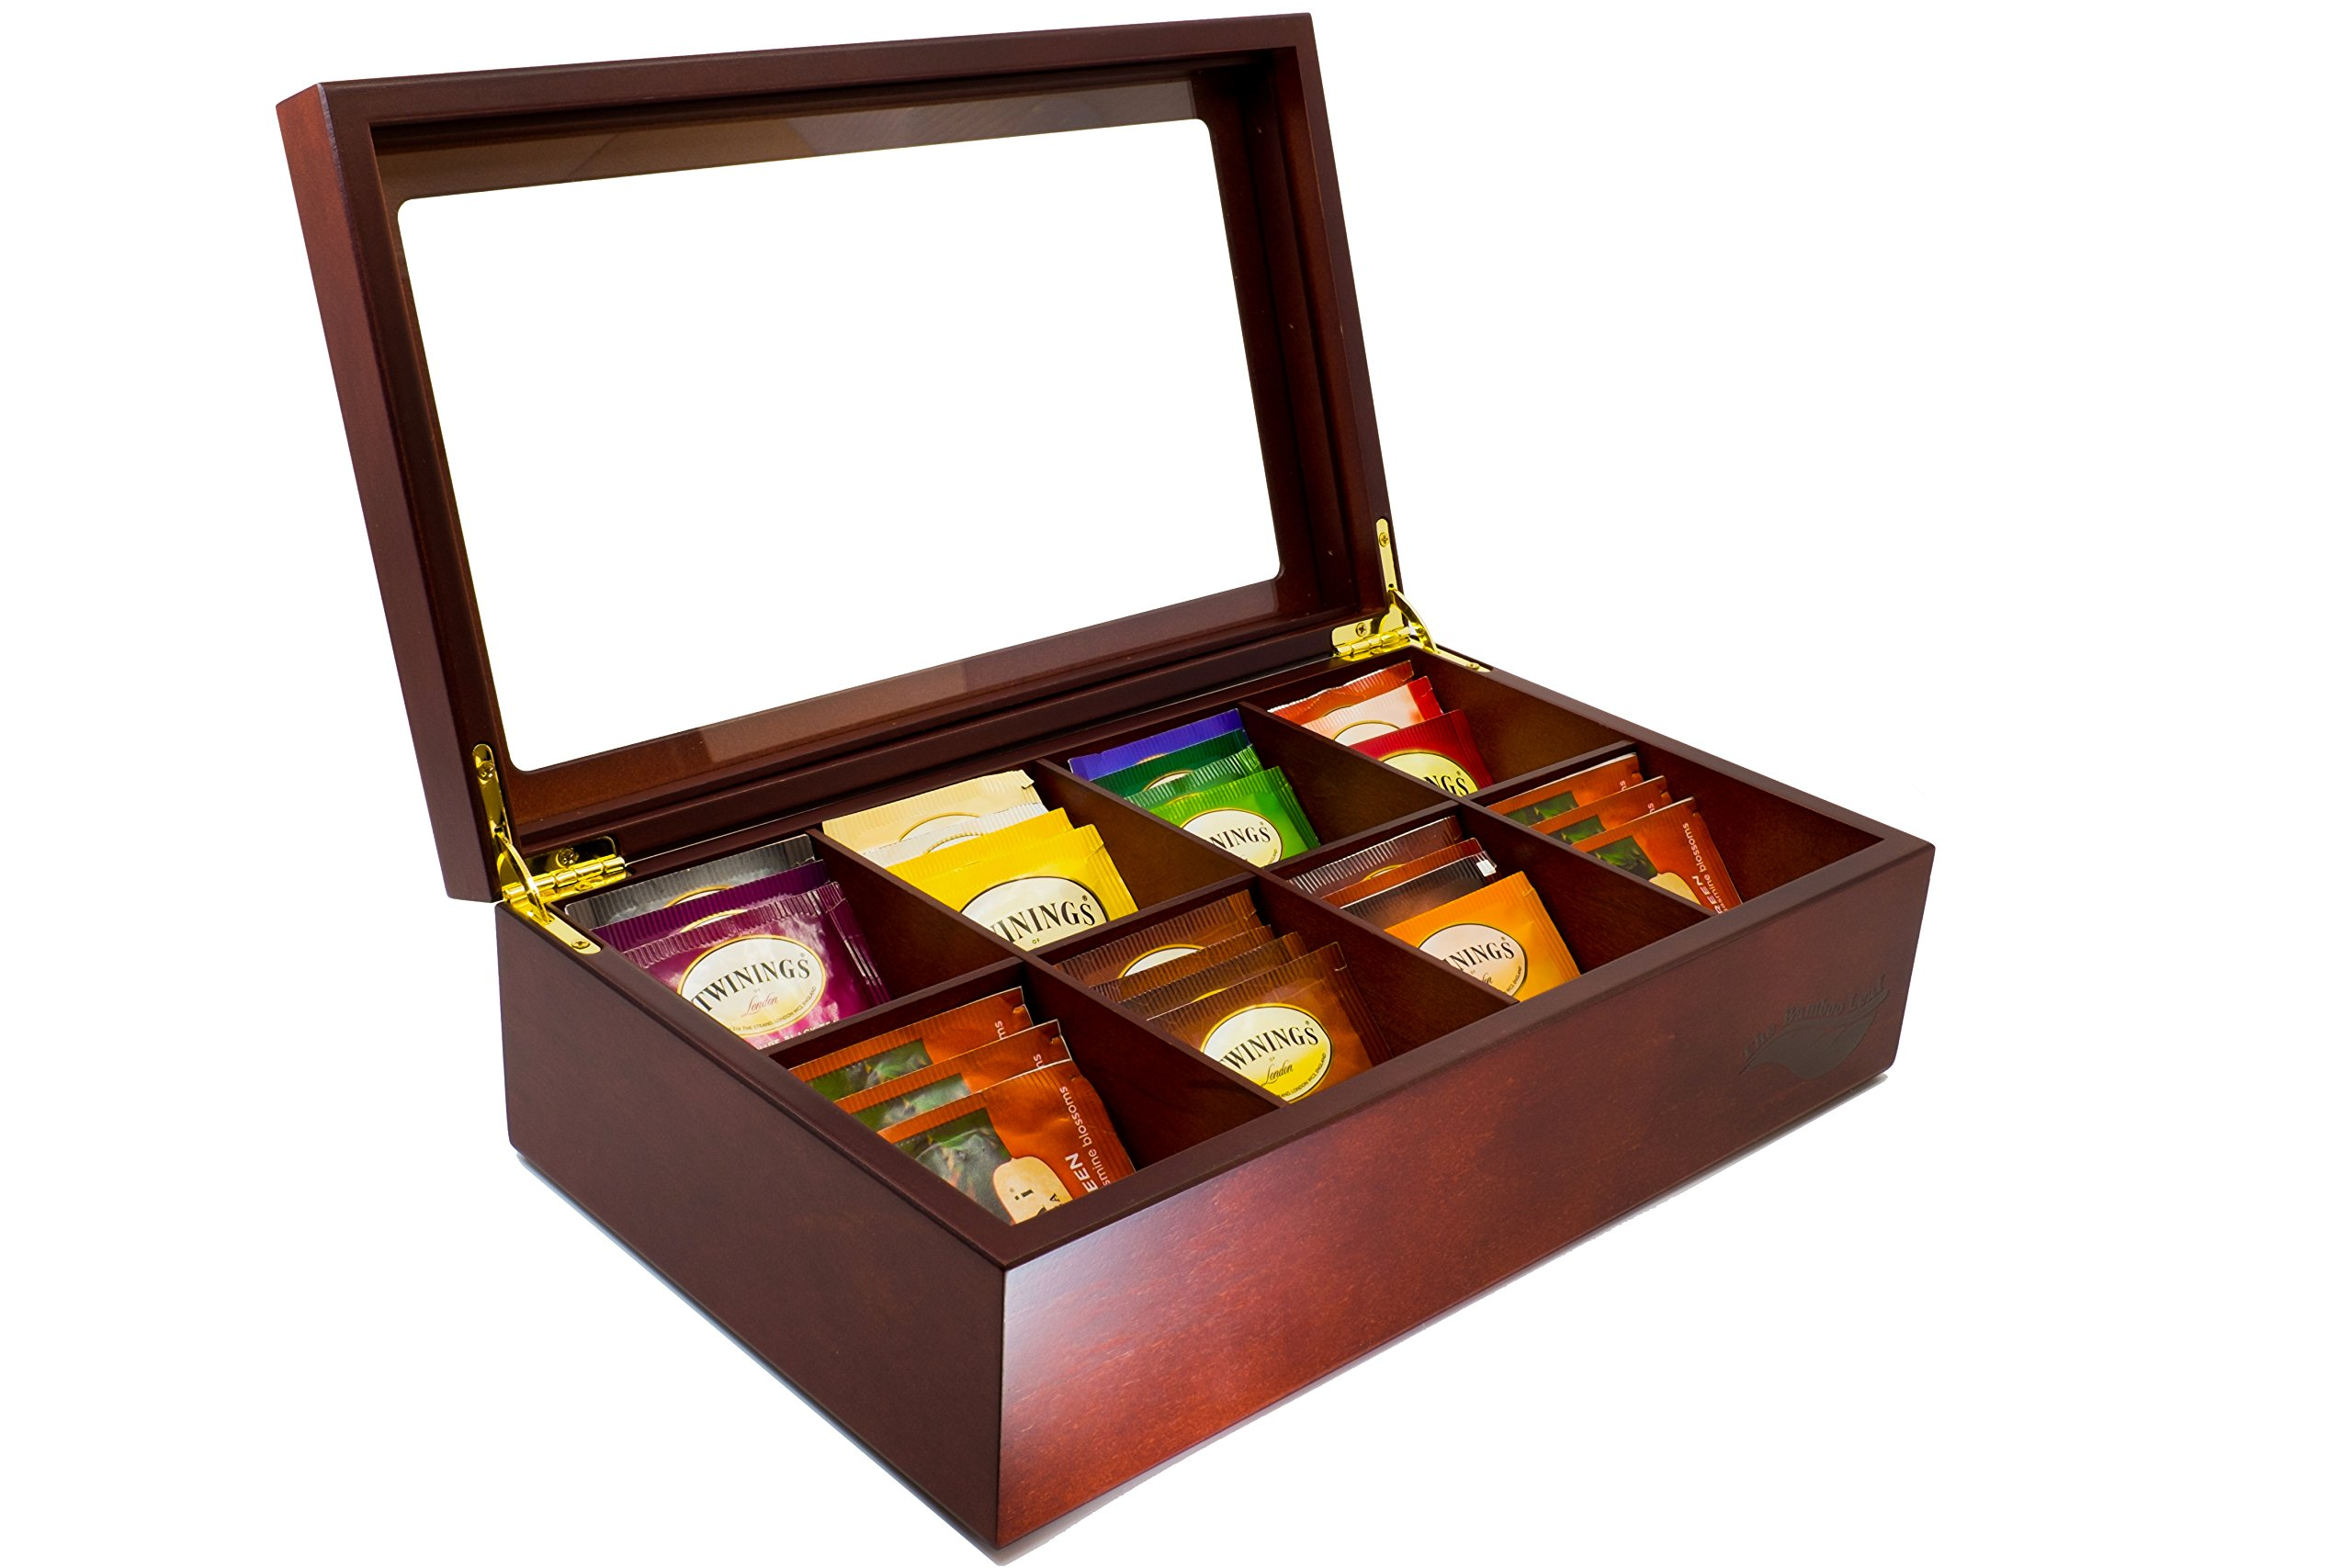 The Bamboo Leaf Wooden Tea Storage Chest Box with 8 Compartments and Glass Window (Cherrywood) by The Bamboo Leaf